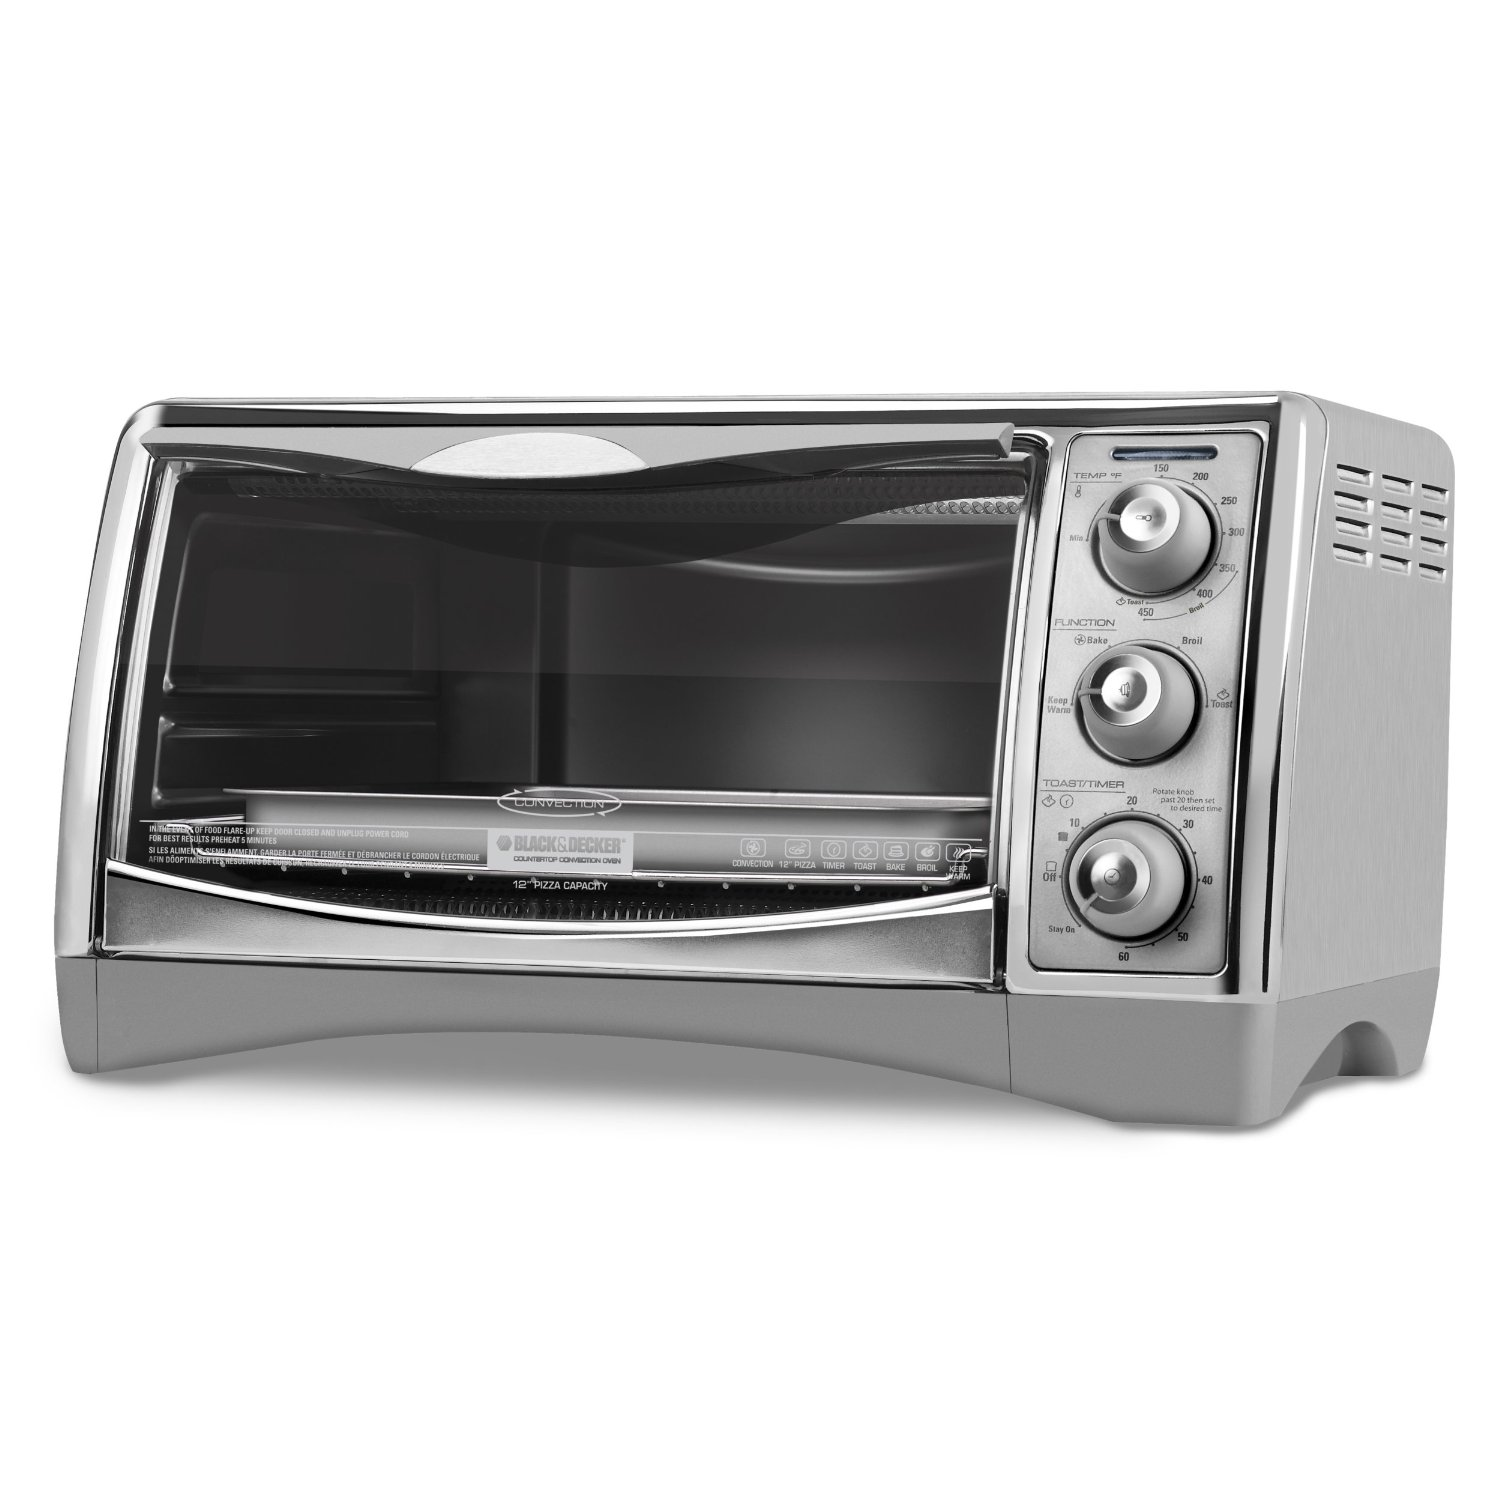 perfect broil convection toaster oven walmart com rh walmart com Electric Convection Oven Countertop Convection Oven Recipes